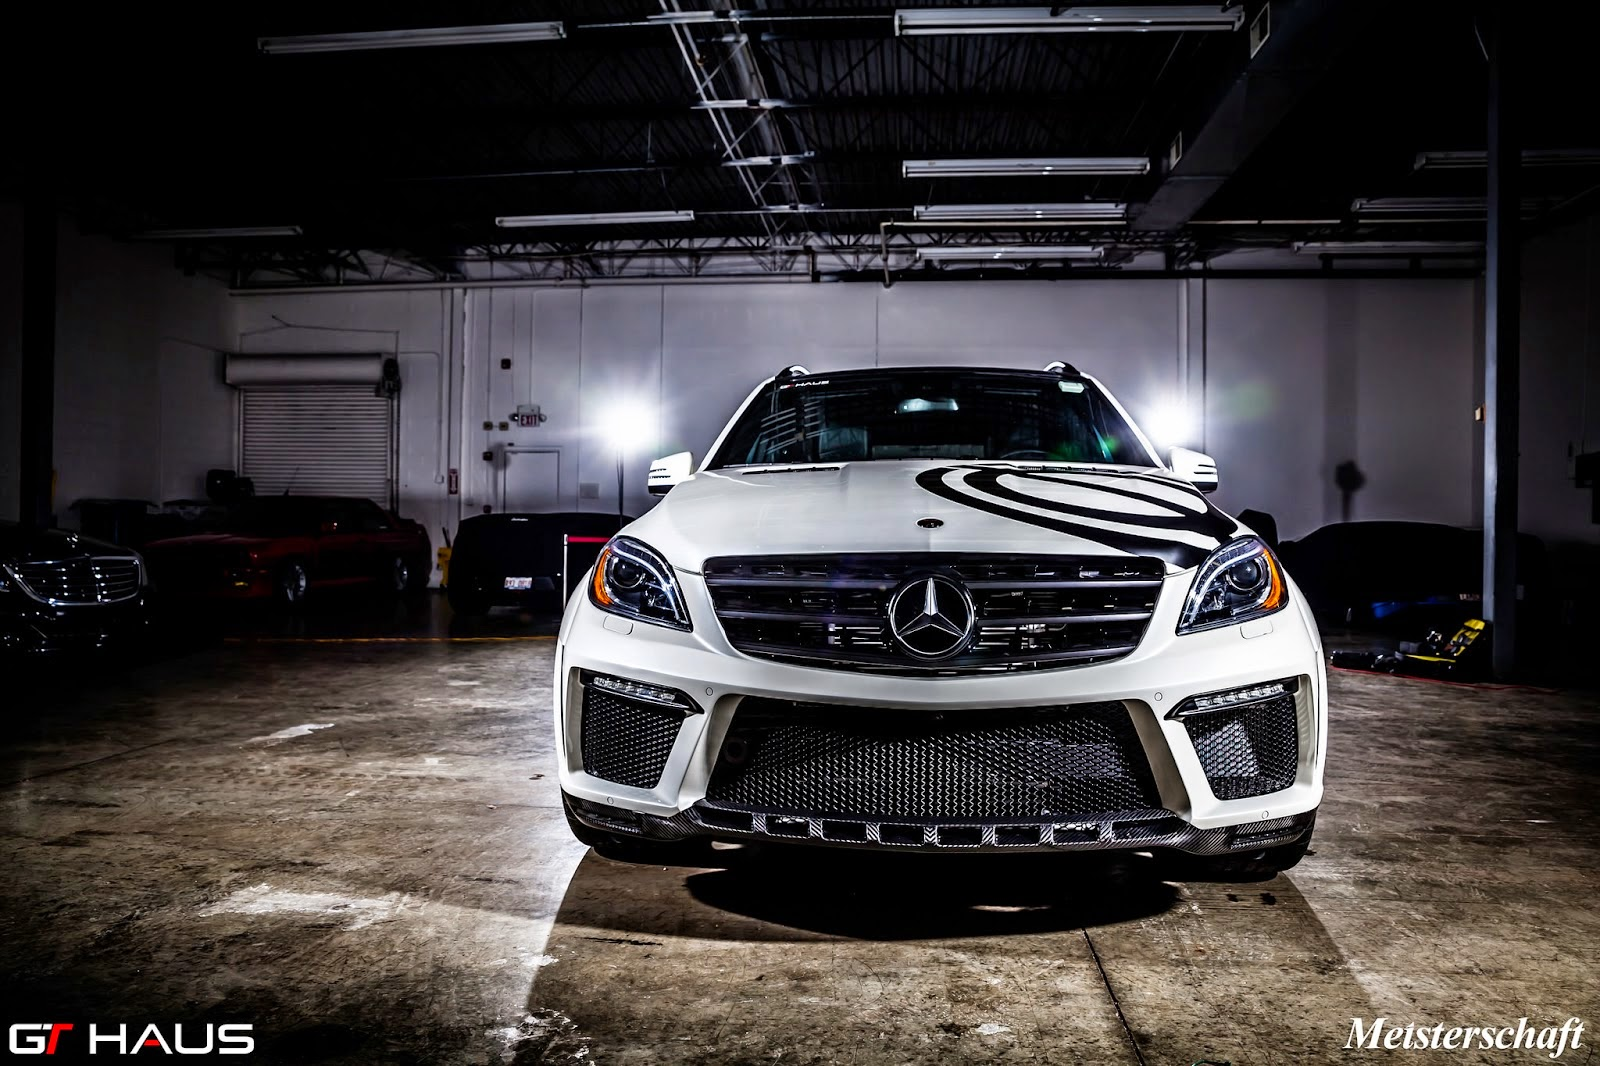 mercedes benz ml 63 amg inferno by meisterschaft gt haus benztuning. Black Bedroom Furniture Sets. Home Design Ideas